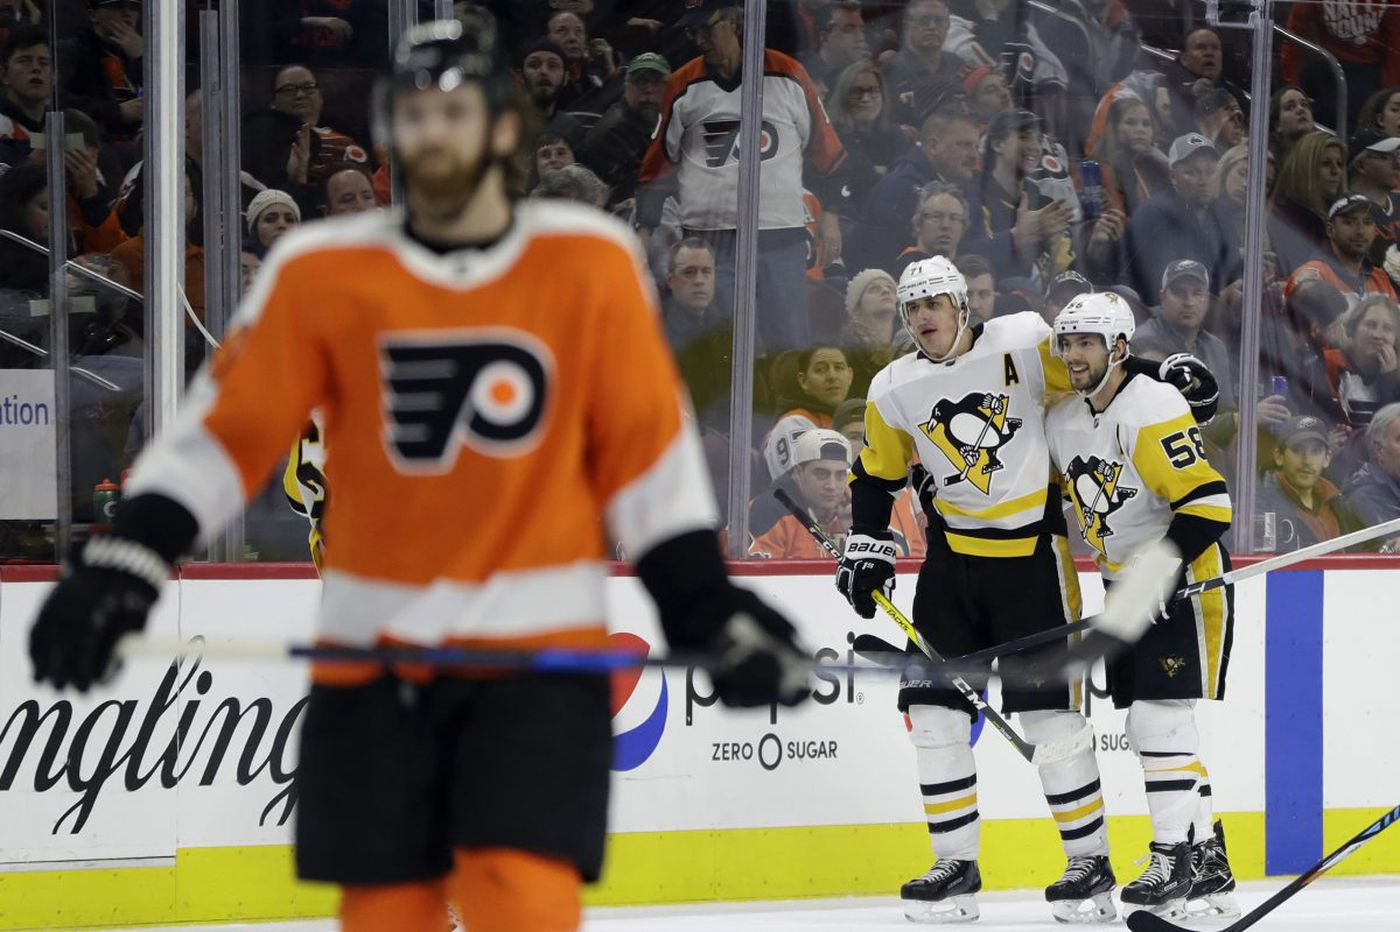 Observations from Flyers' latest loss: Why do they struggle at home?